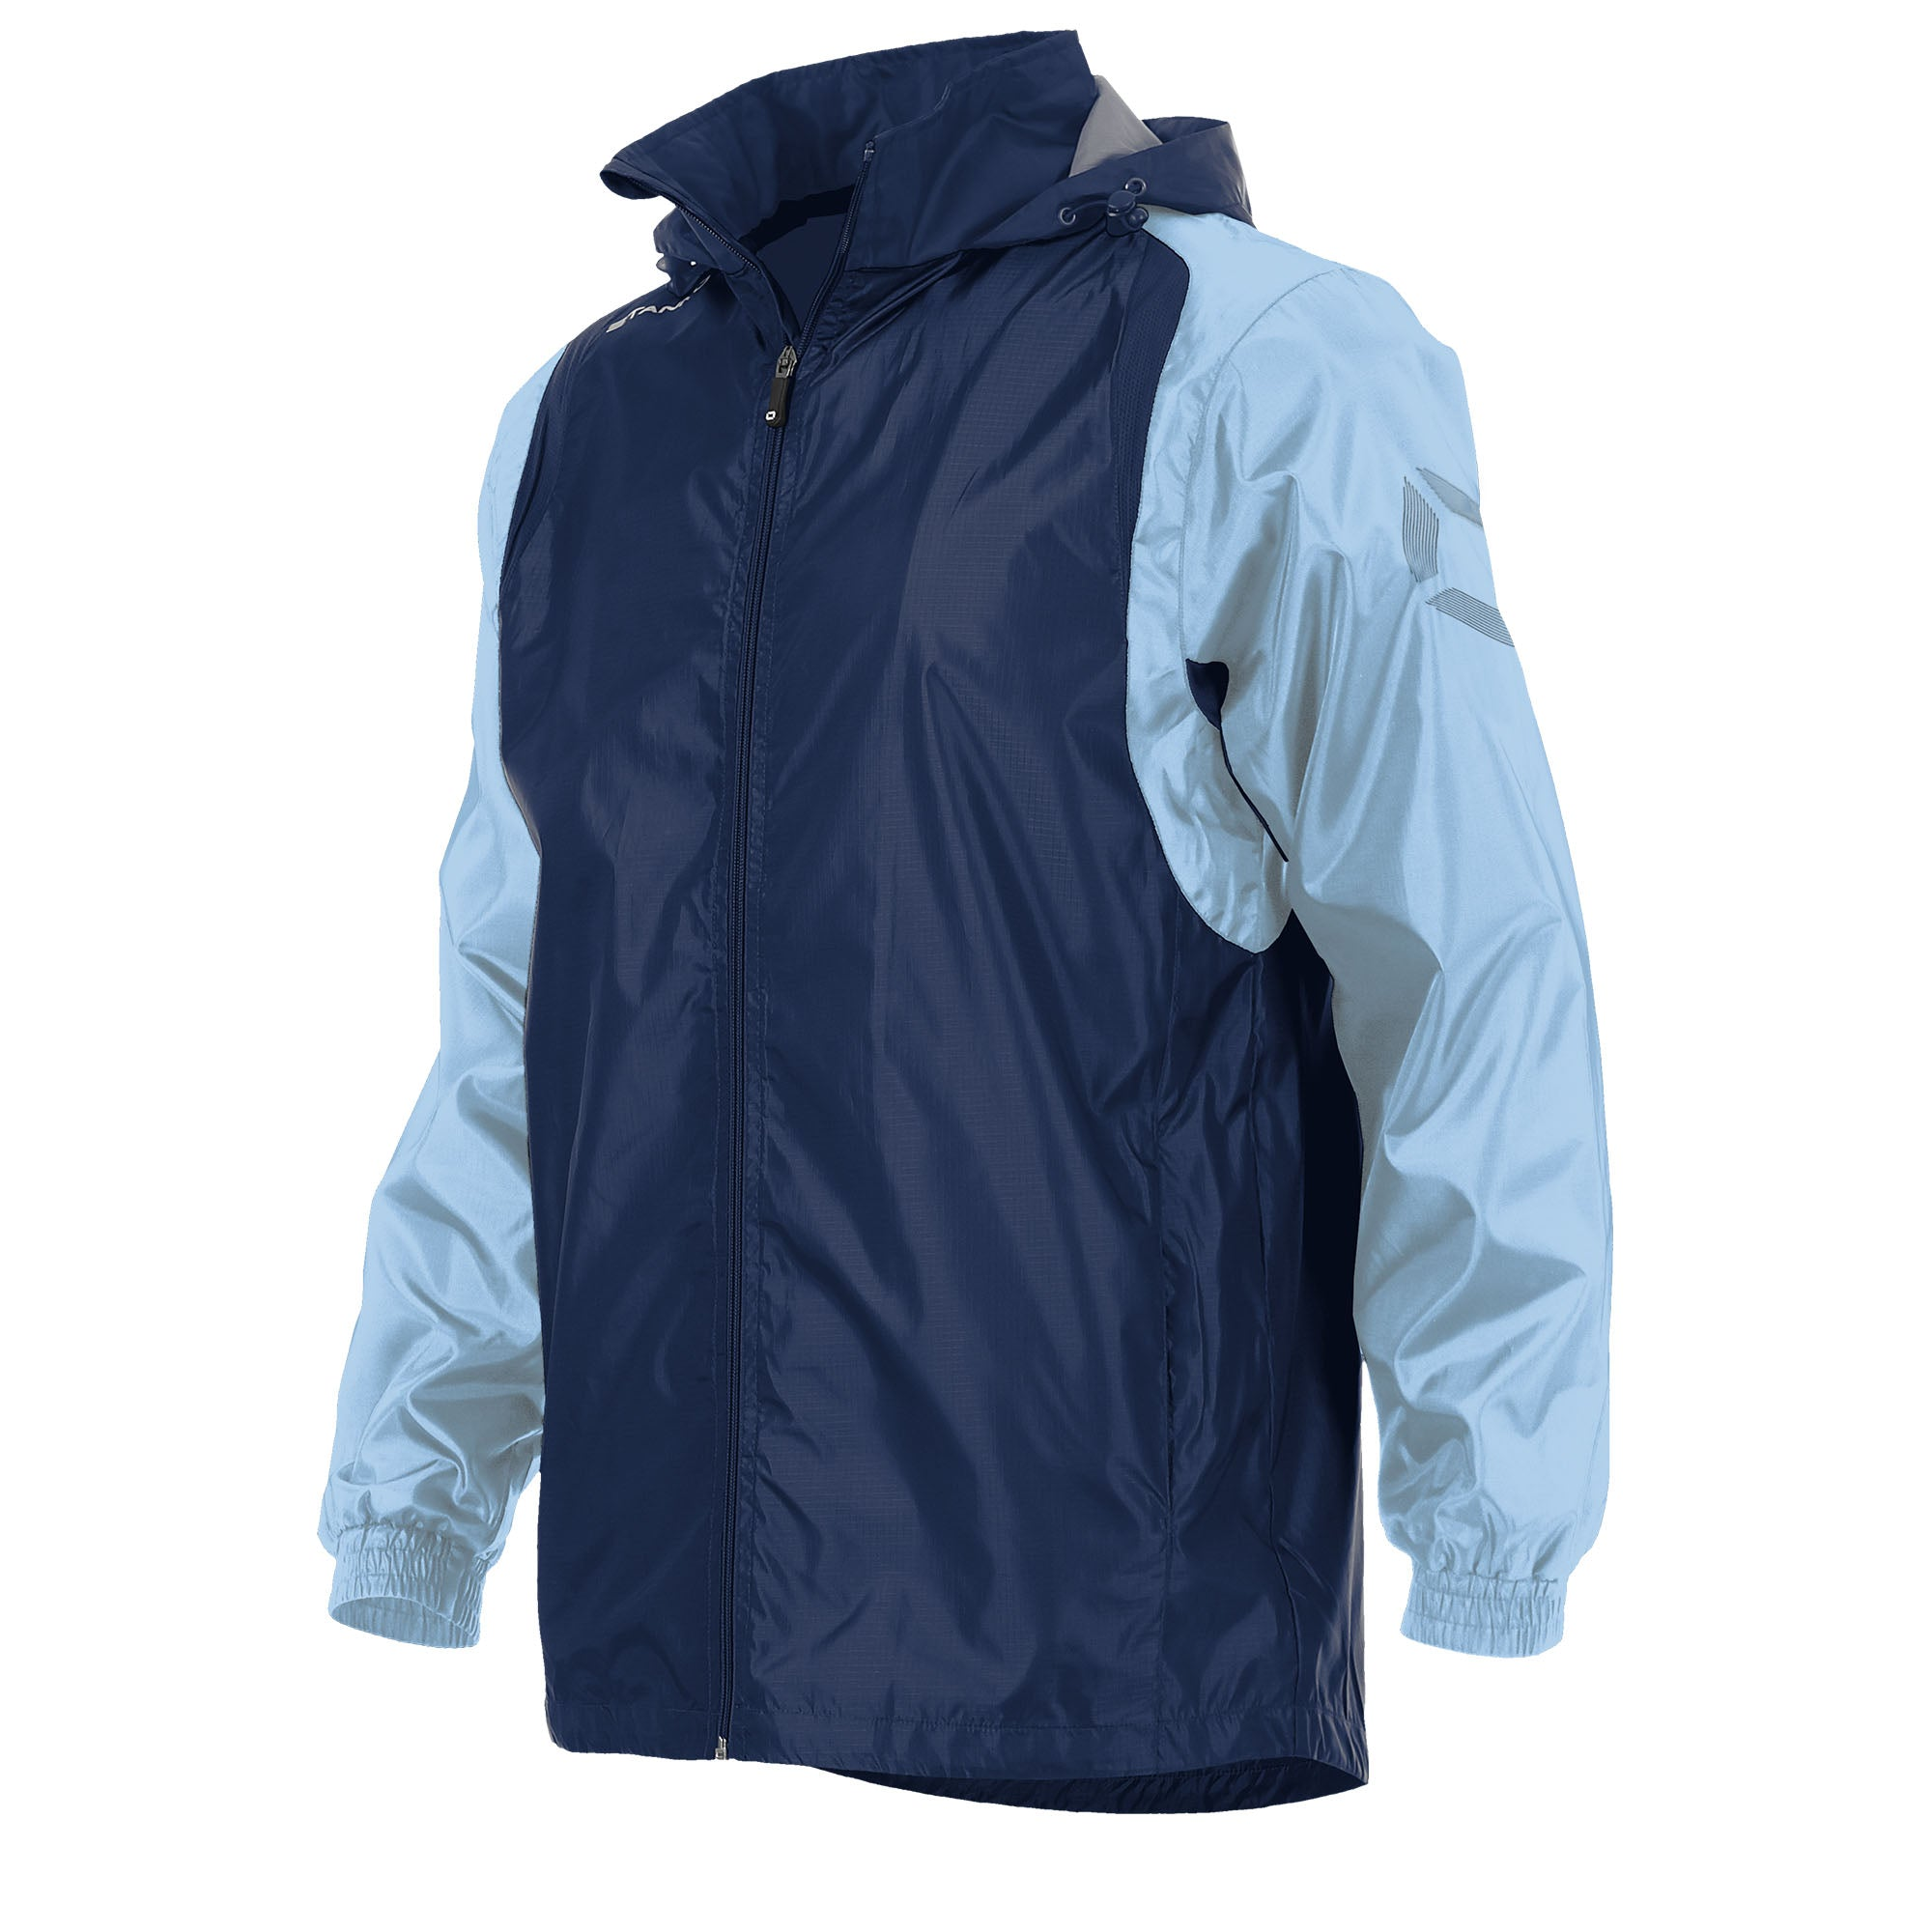 Front of Stanno Centro windbreaker in navy with sky blue contrast sleeve and Stanno printed logo